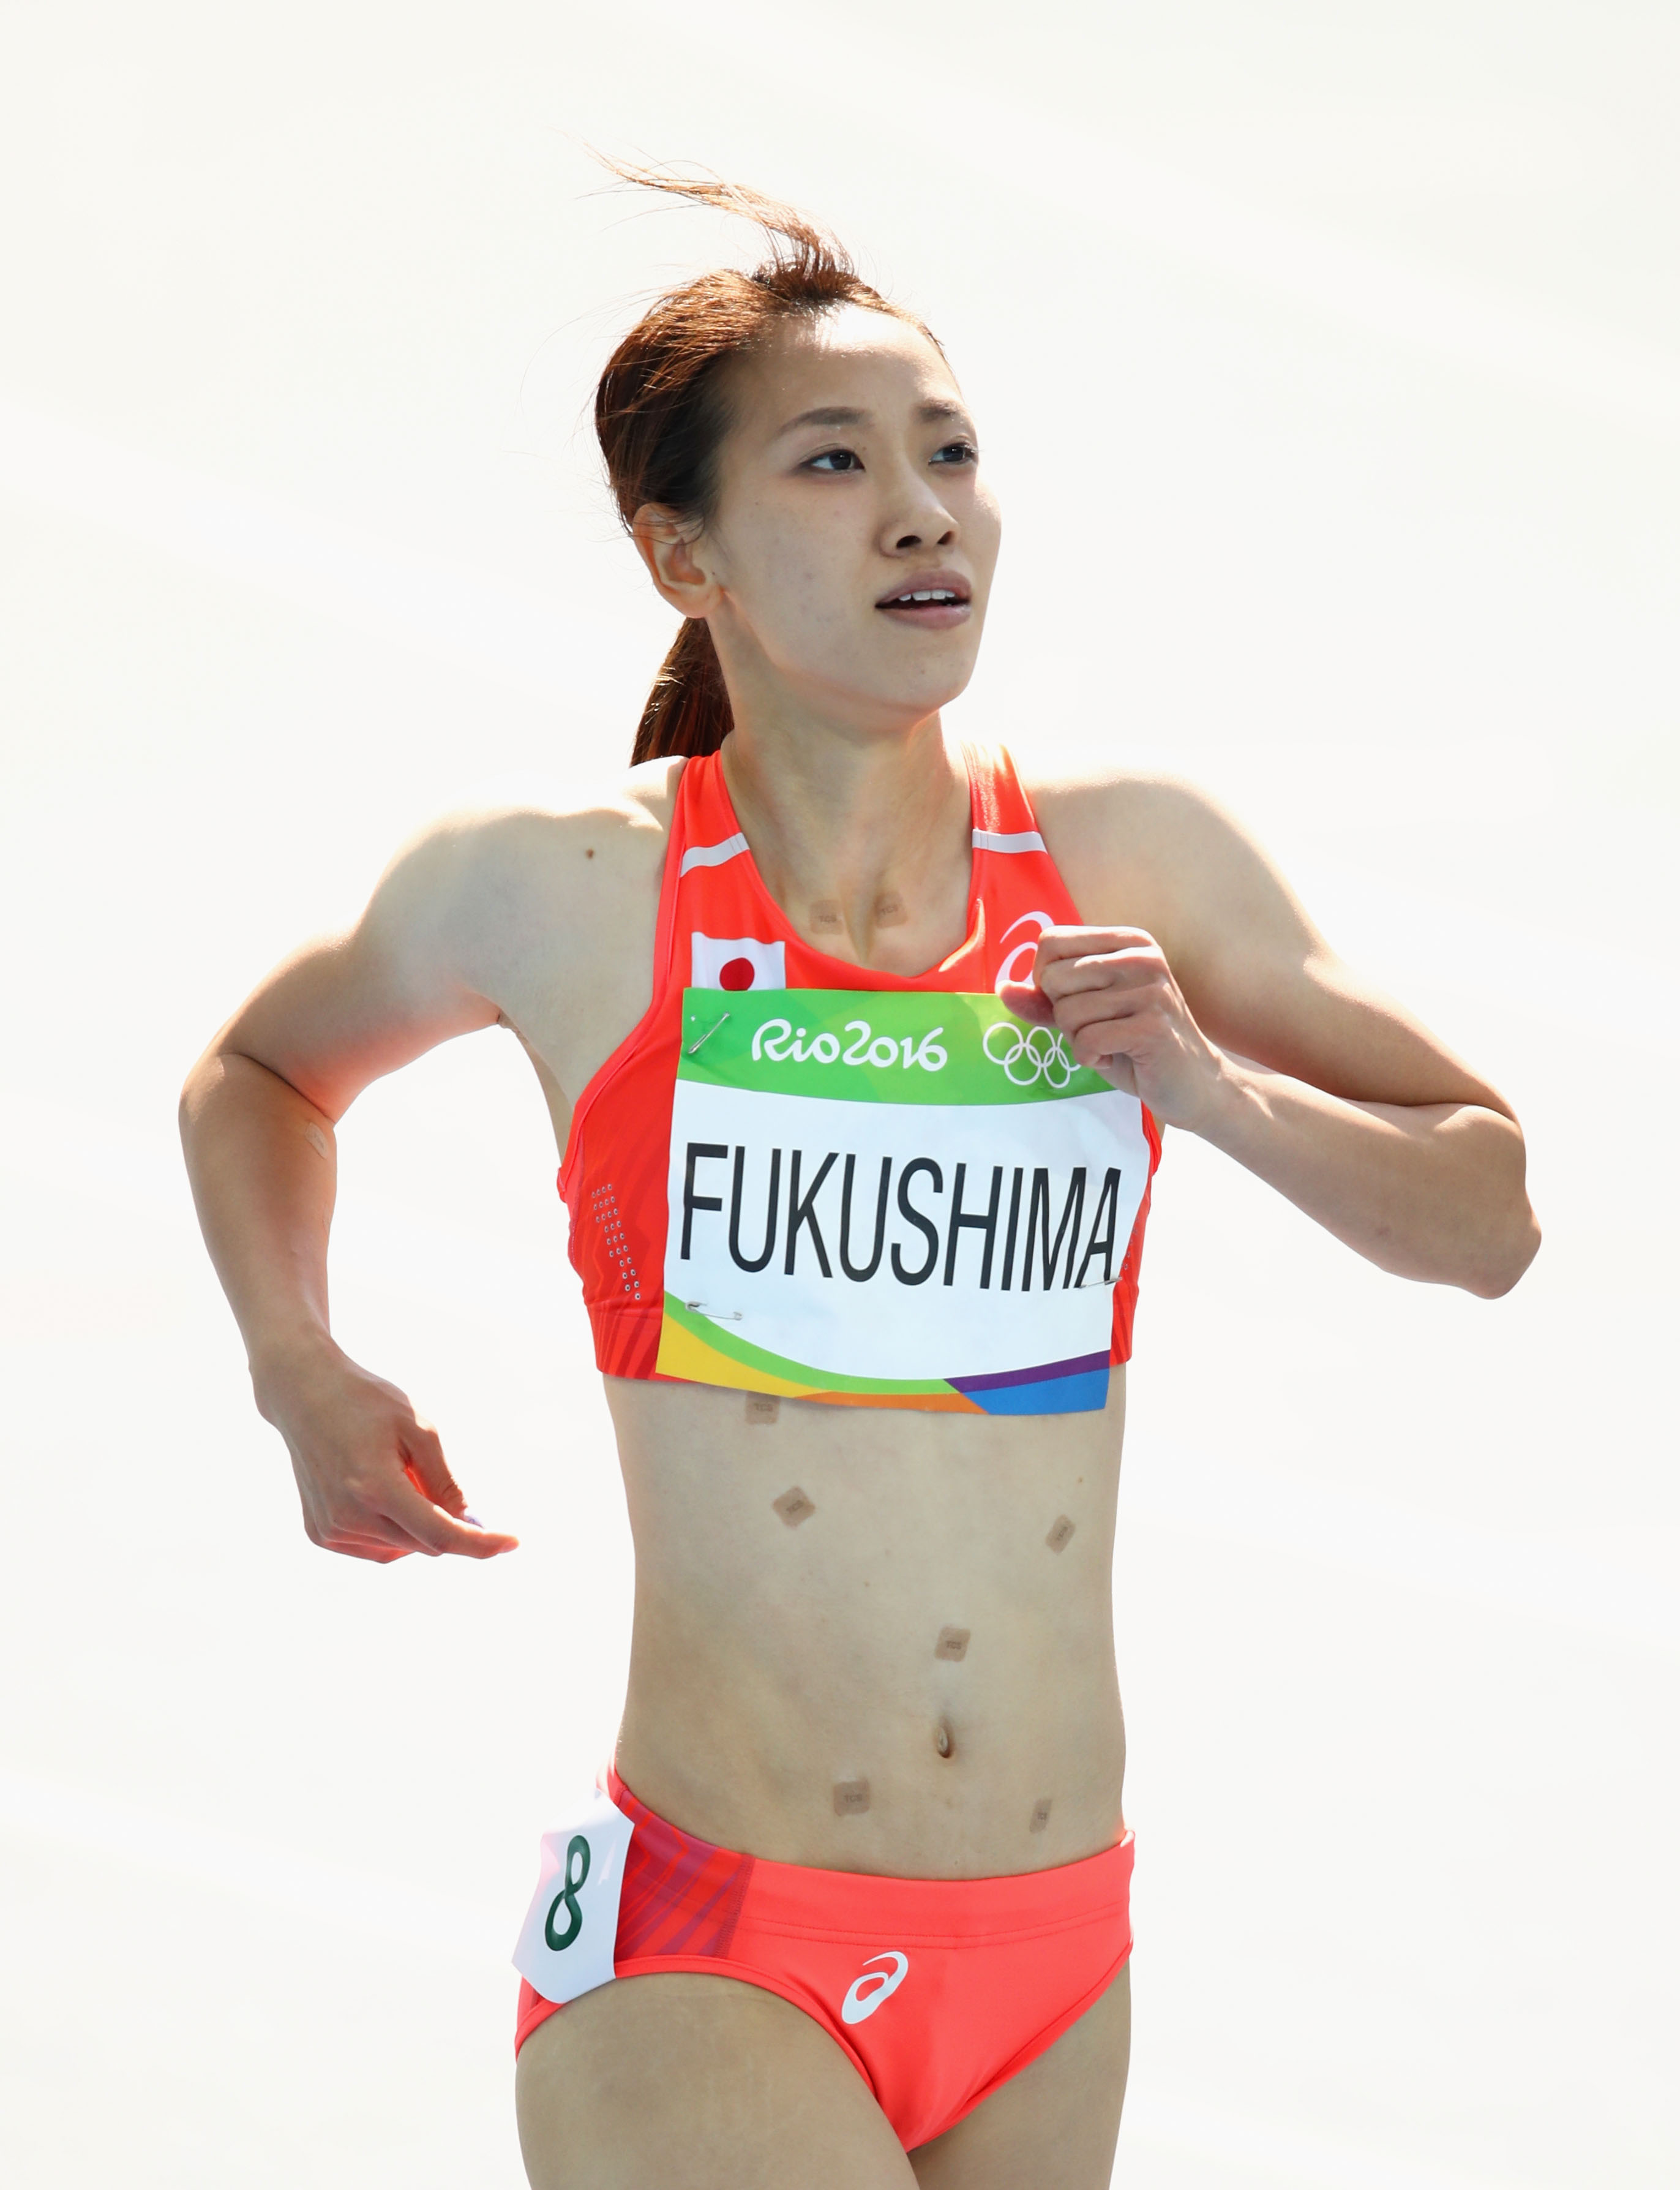 Heres Why Japans Chisato Fukushima Wore Patches While Running In Rio GettyImages 589705648